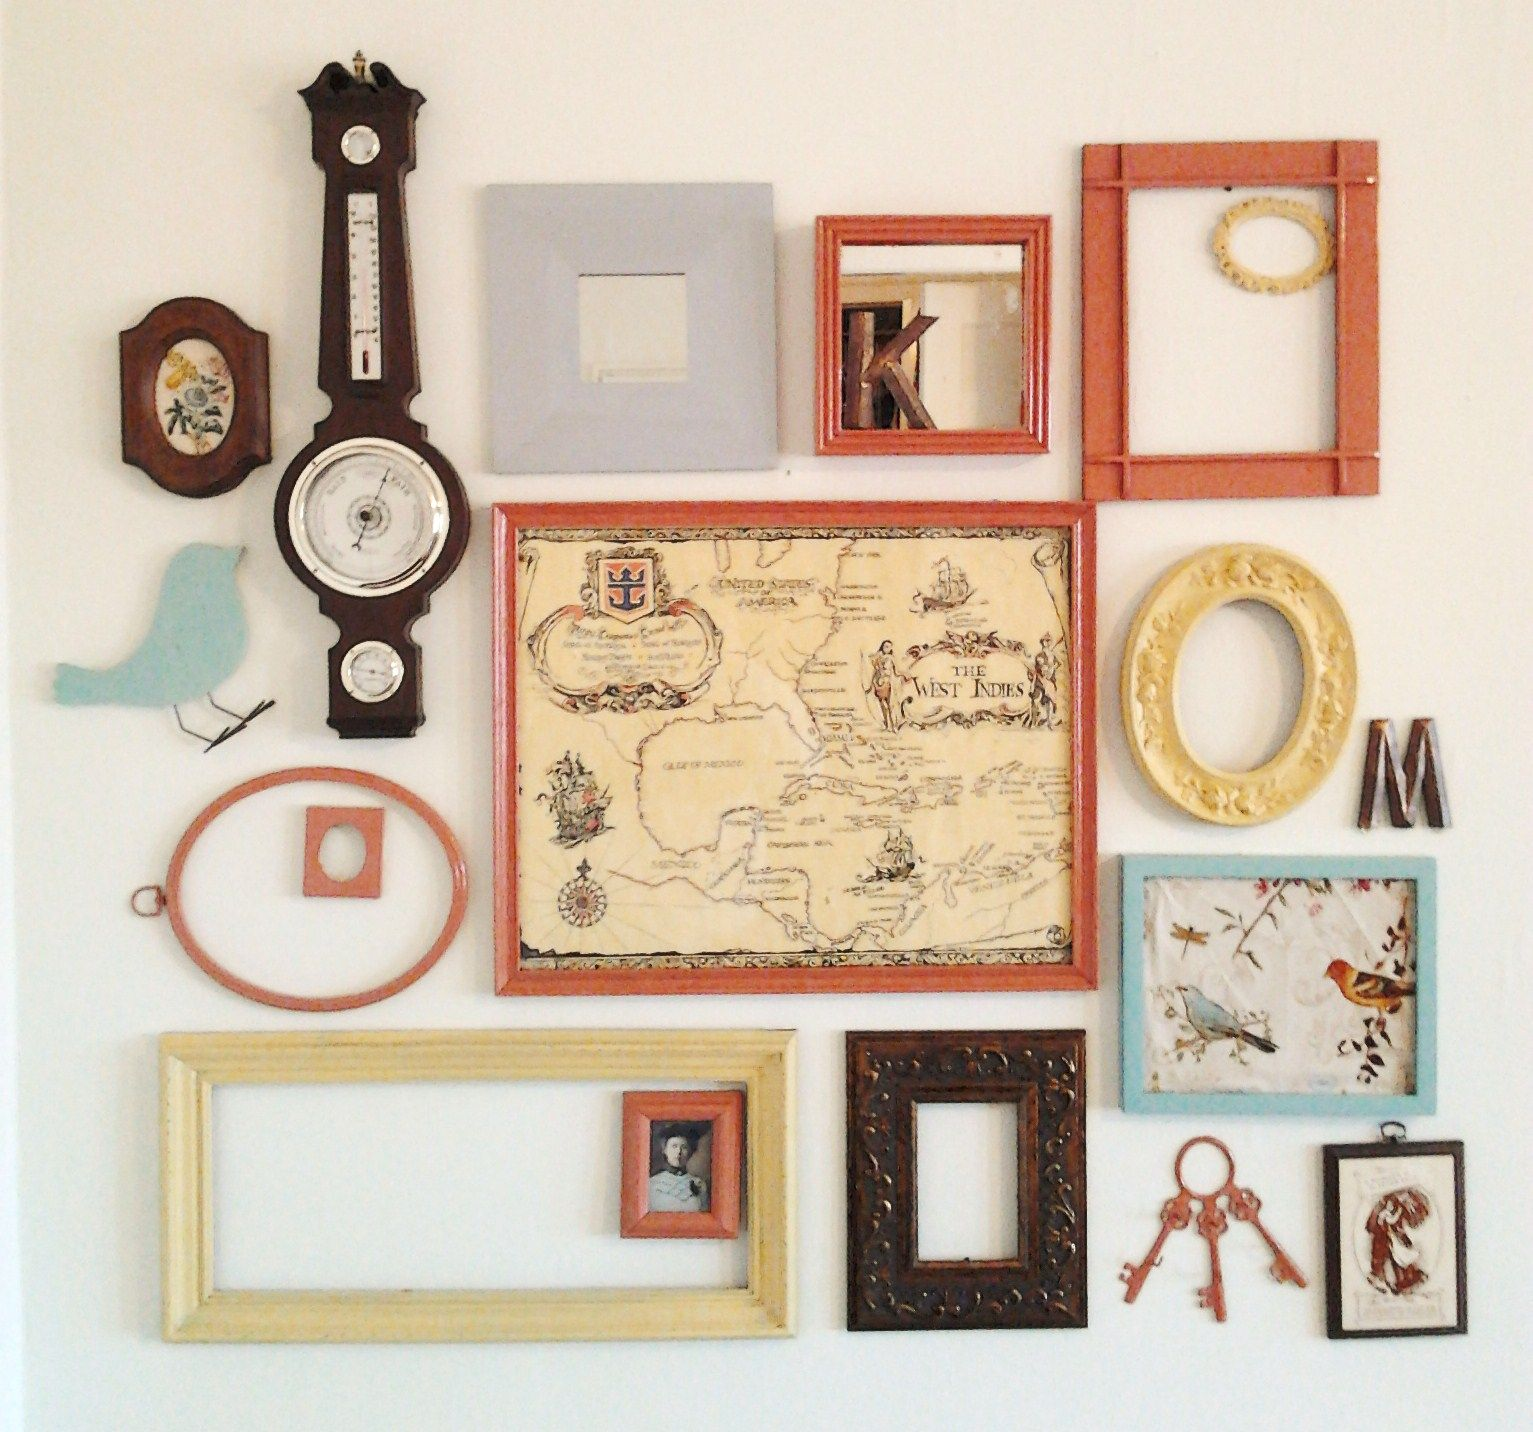 Picture frame wall display/ DIY headboard | DIY.E.S! | Pinterest ...